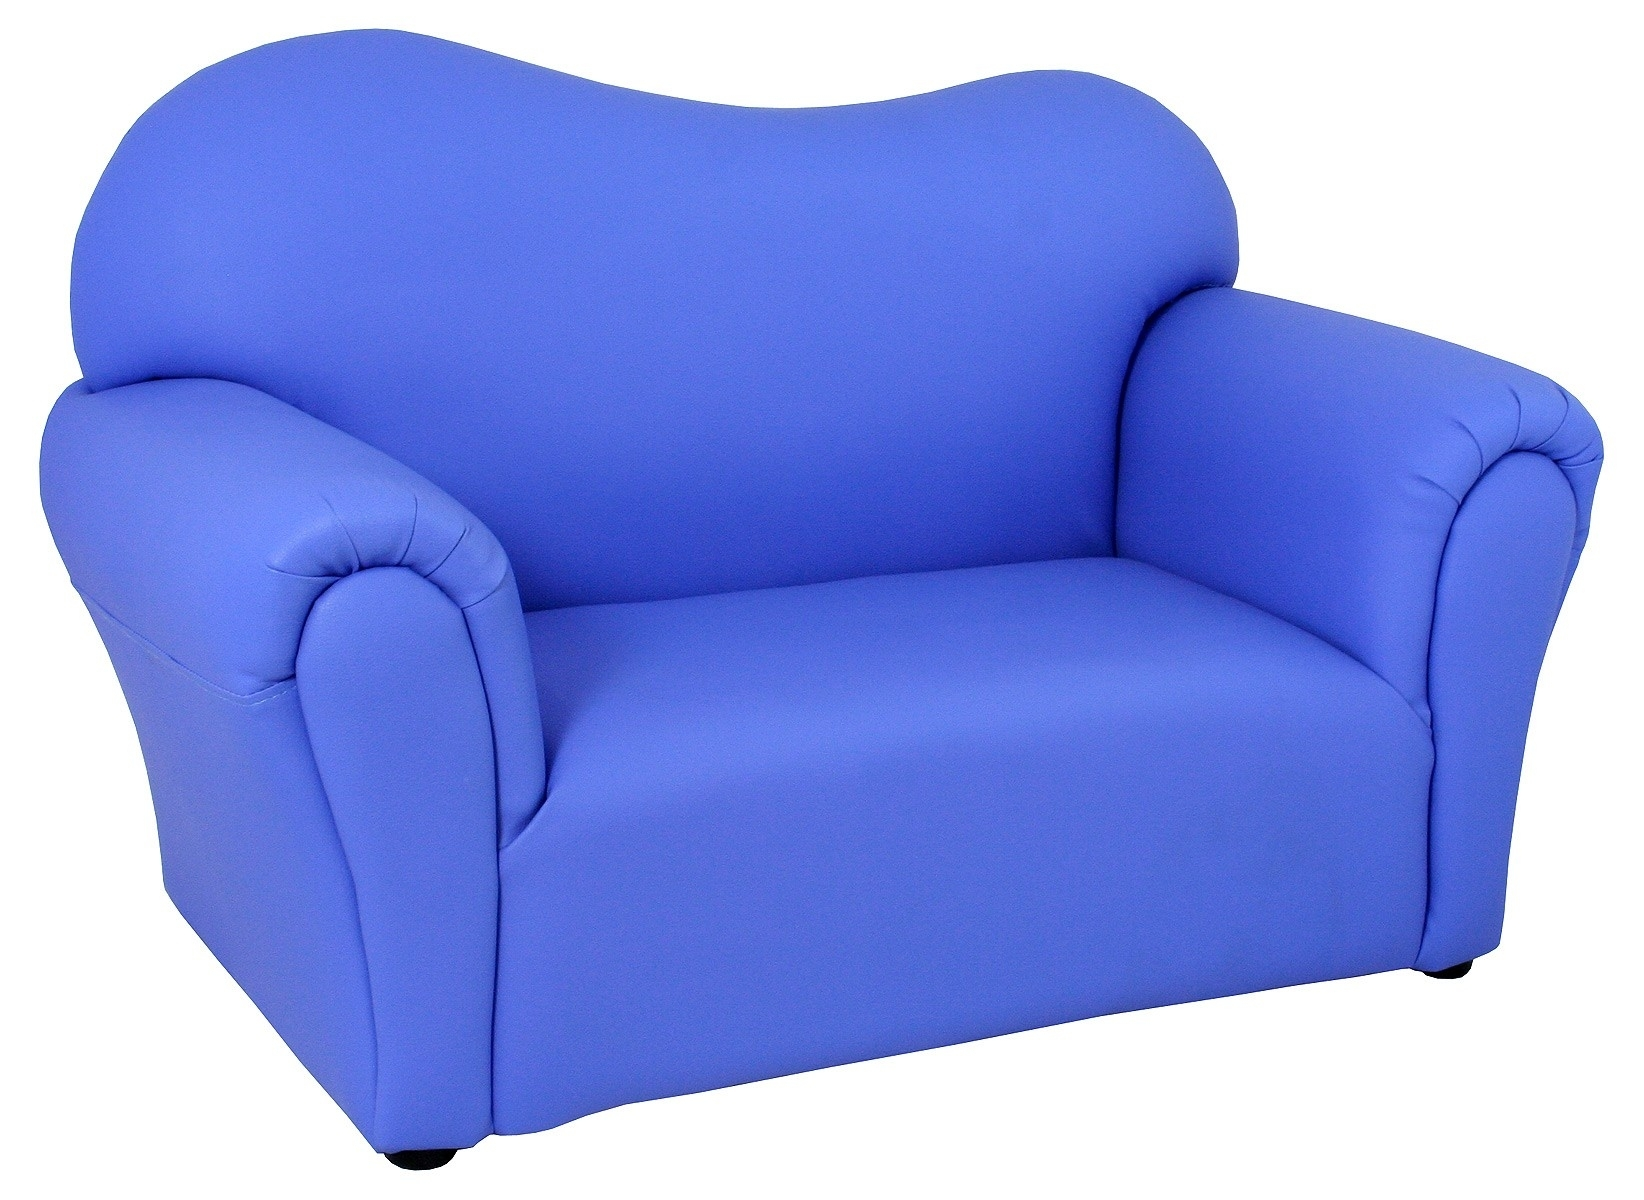 Childrens Blue Mini Sofa - Be Fabulous! inside Mini Sofas (Image 2 of 10)